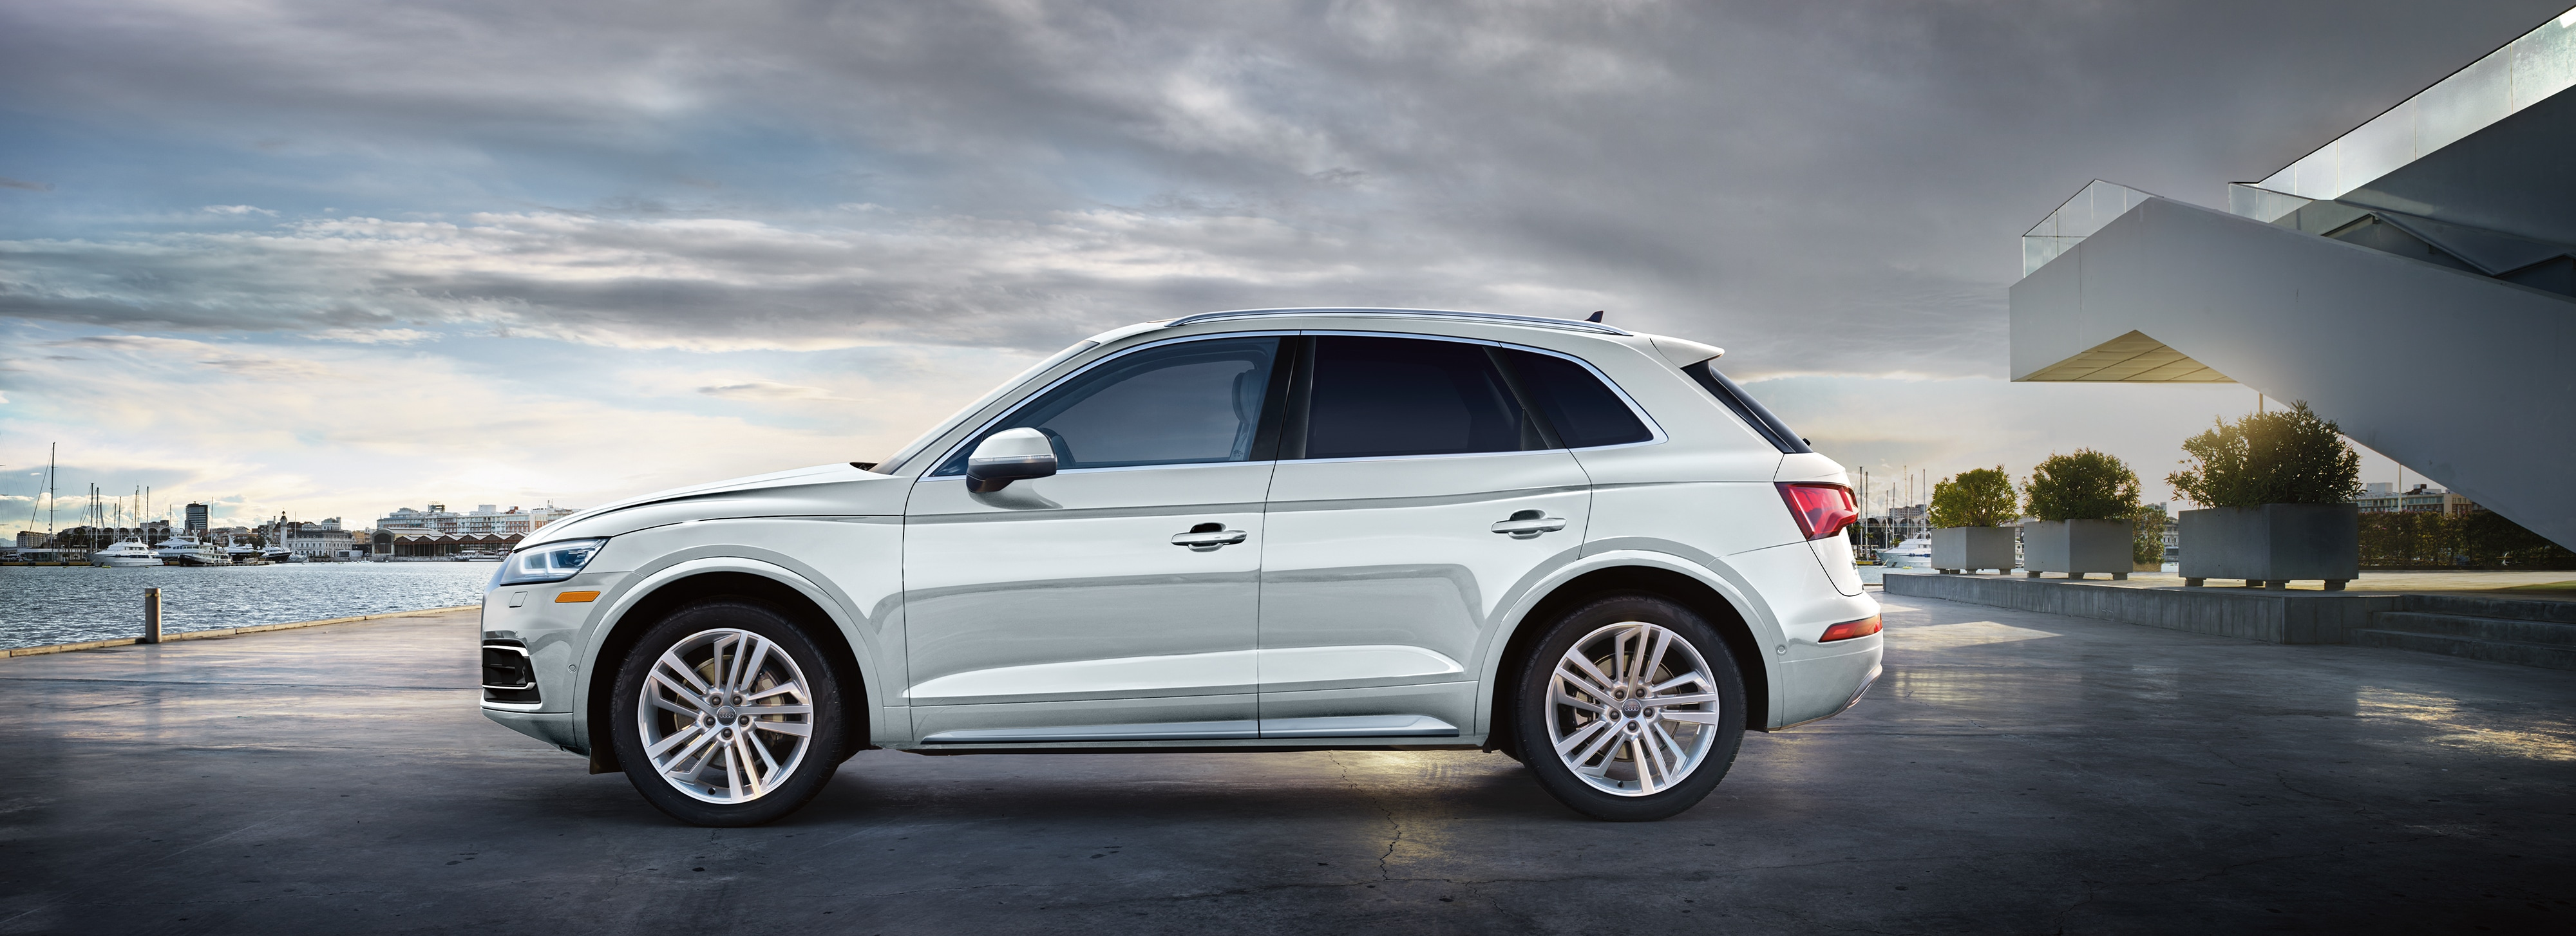 audi q-series models | new audi suv lineup in columbia sc